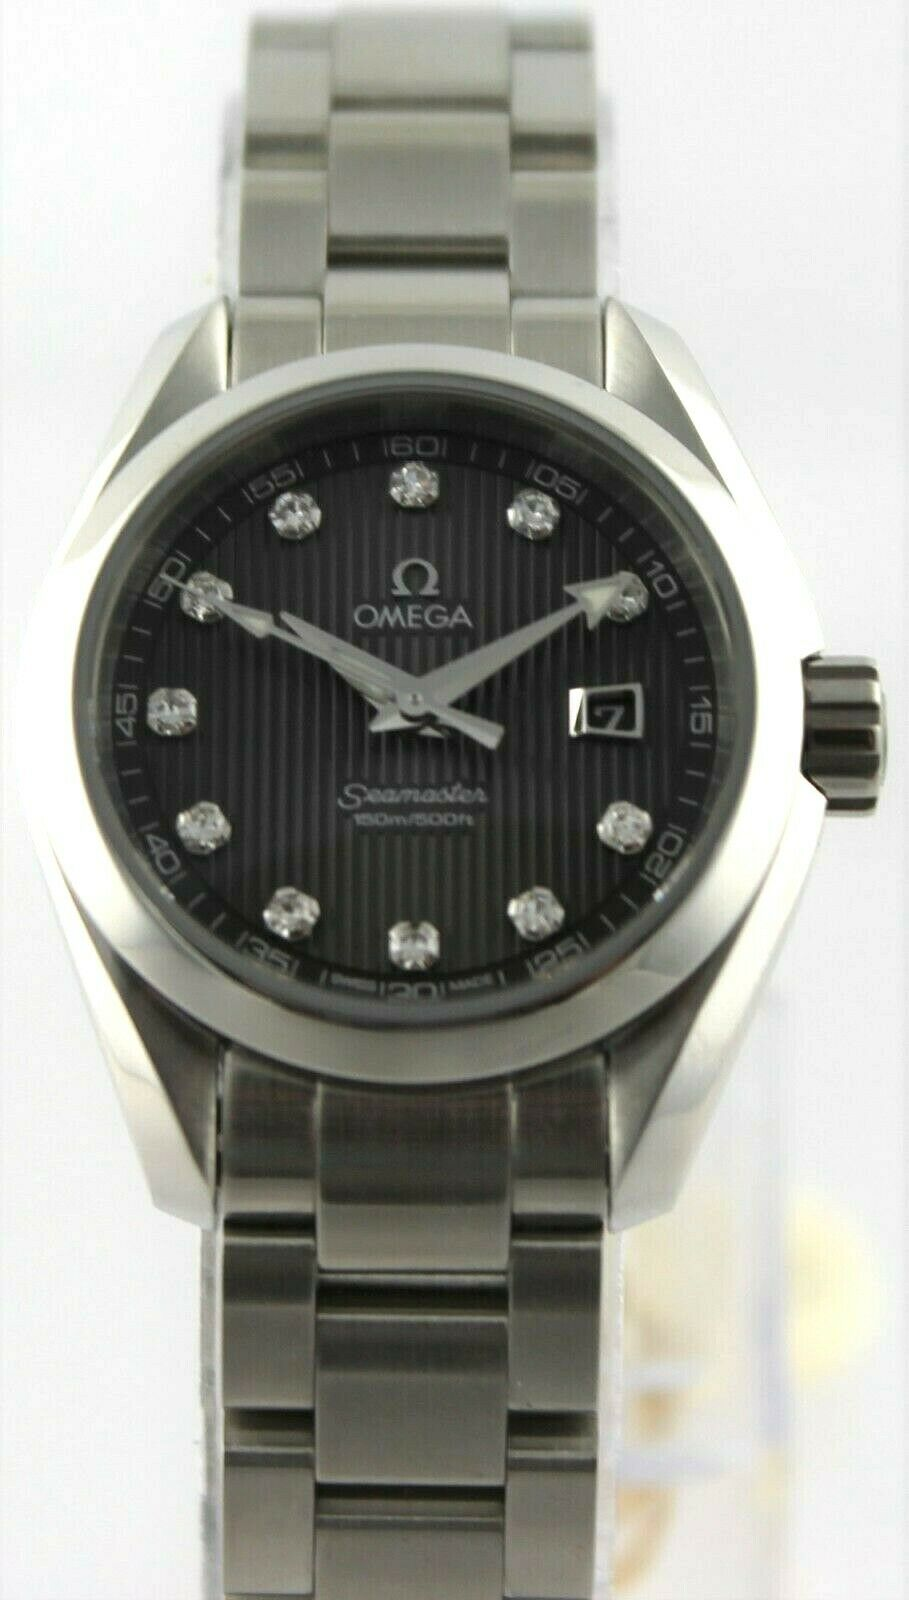 NEW OMEGA SEAMASTER AQUA TERRA 231.10.30.61.56.001 GRAY QUARTZ DIAMOND WATCH